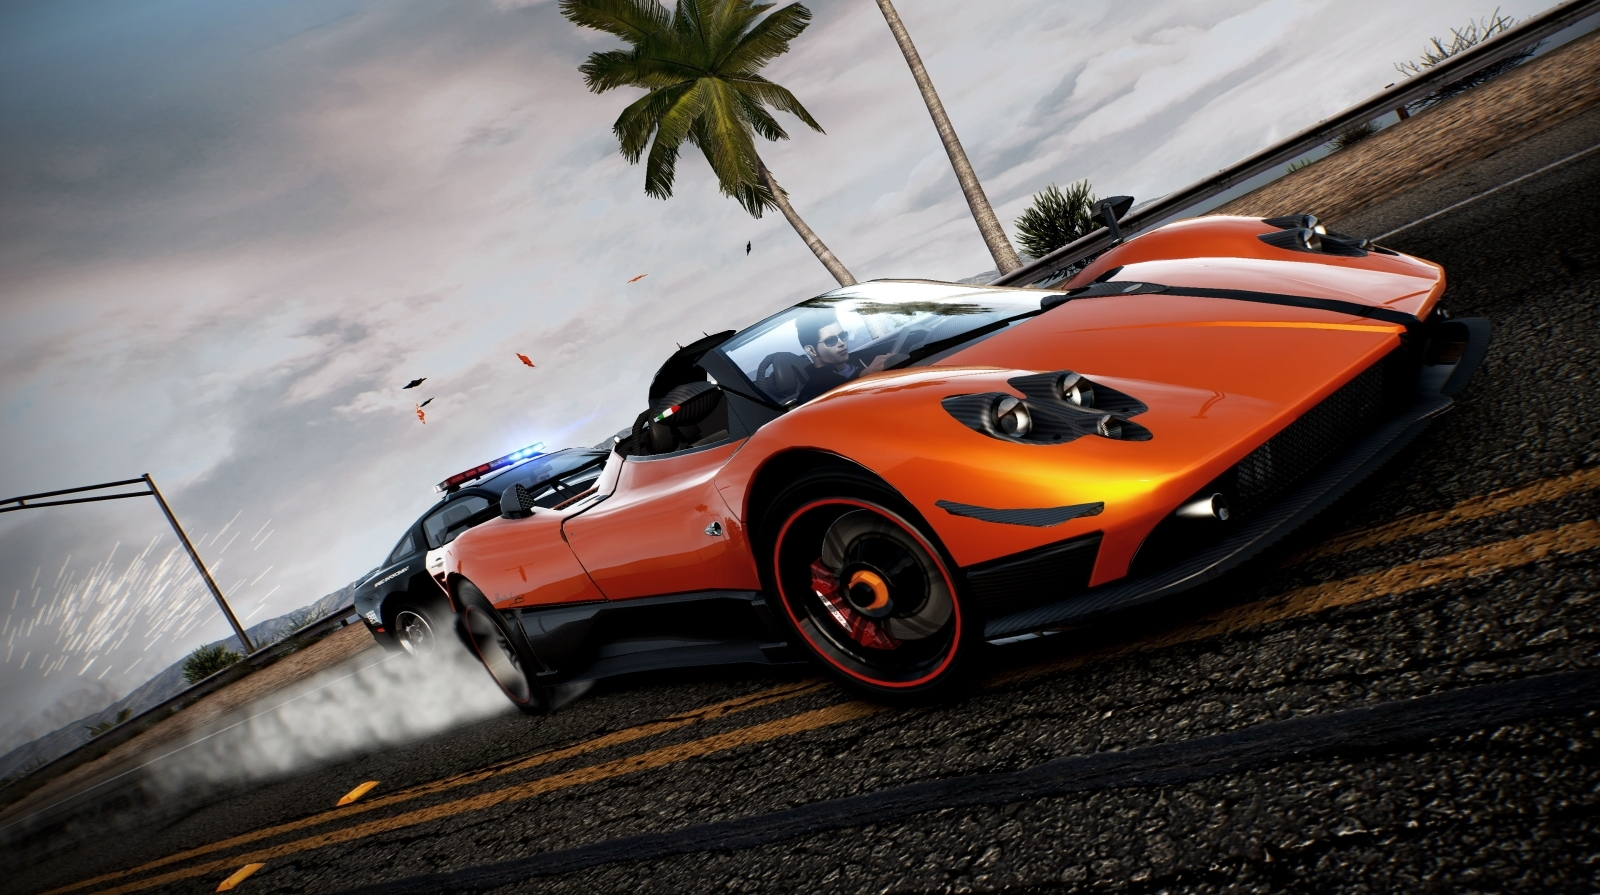 Big Need for Speed: Hot Pursuit Remastered leak reveals November 6 release date, cross-play multiplayer and more - VG247